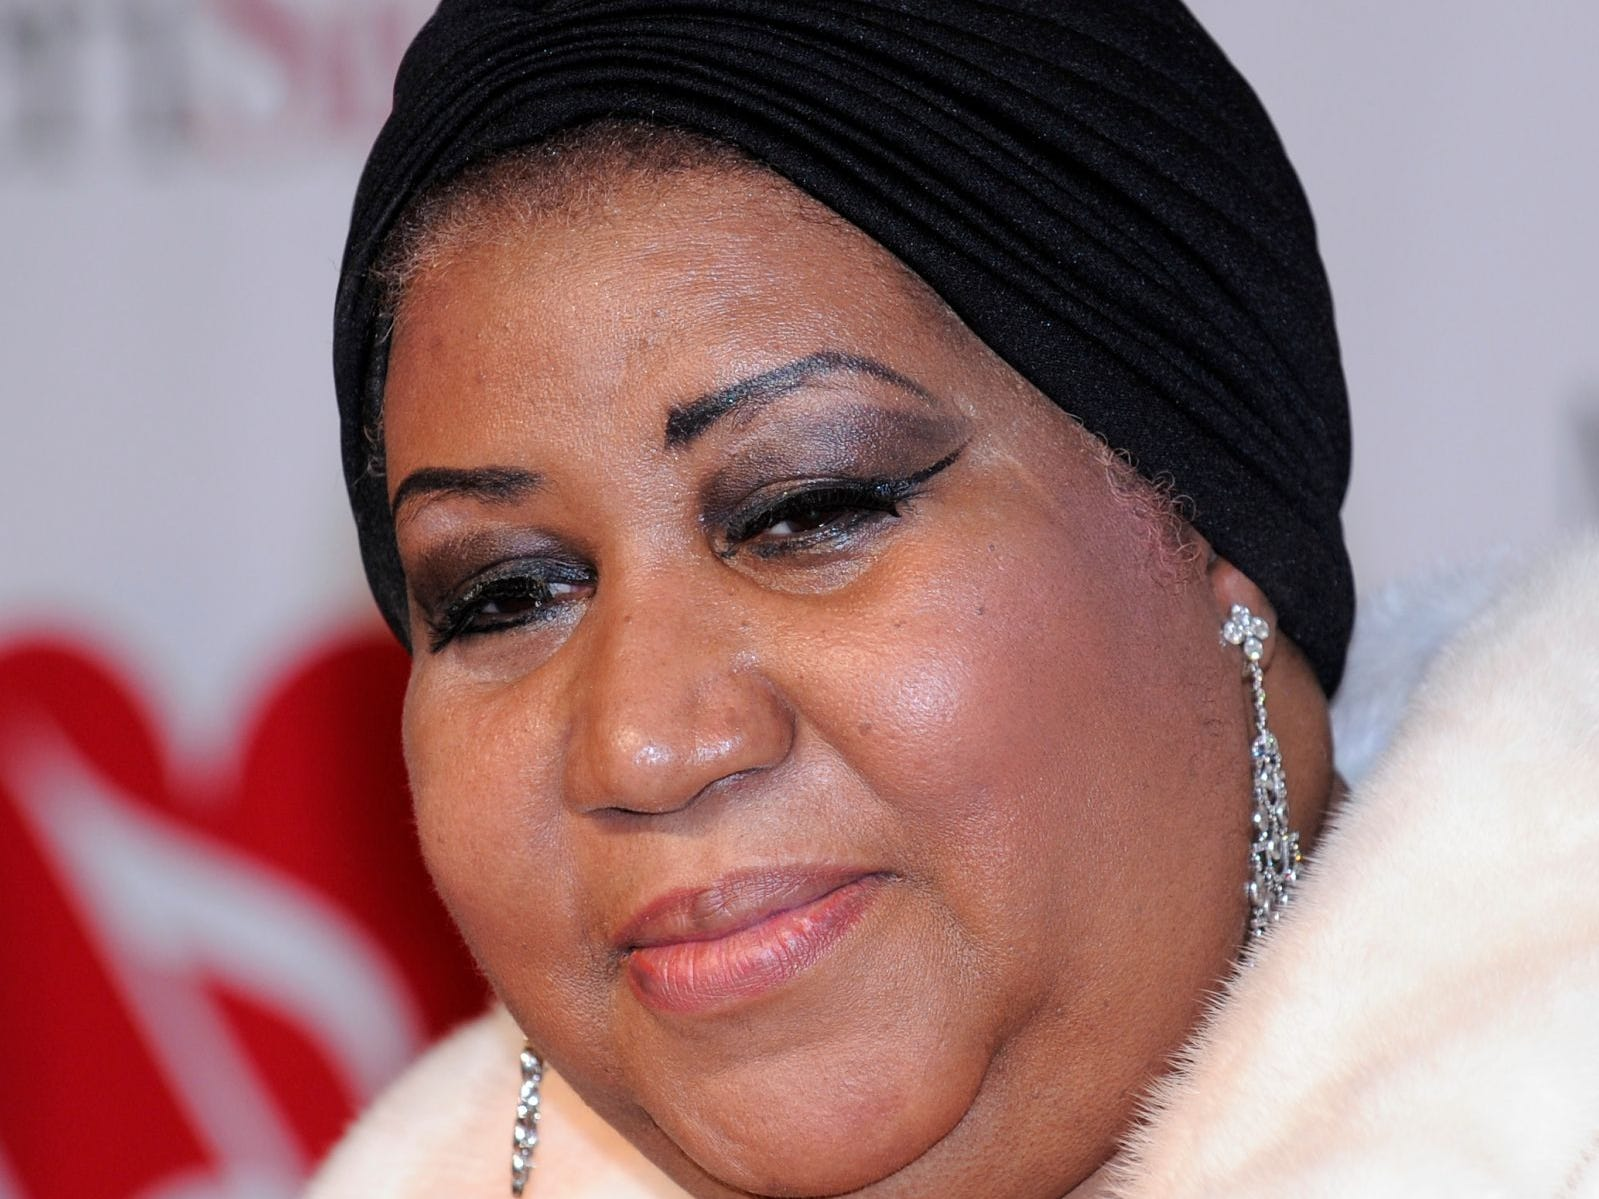 Aretha Franklin poses as she arrives at the MusiCares tribute to her where she was honored as their person of the year, in this  Feb. 8, 2008, file photo in Los Angeles. (AP Photo/Mark J. Terrill, file)